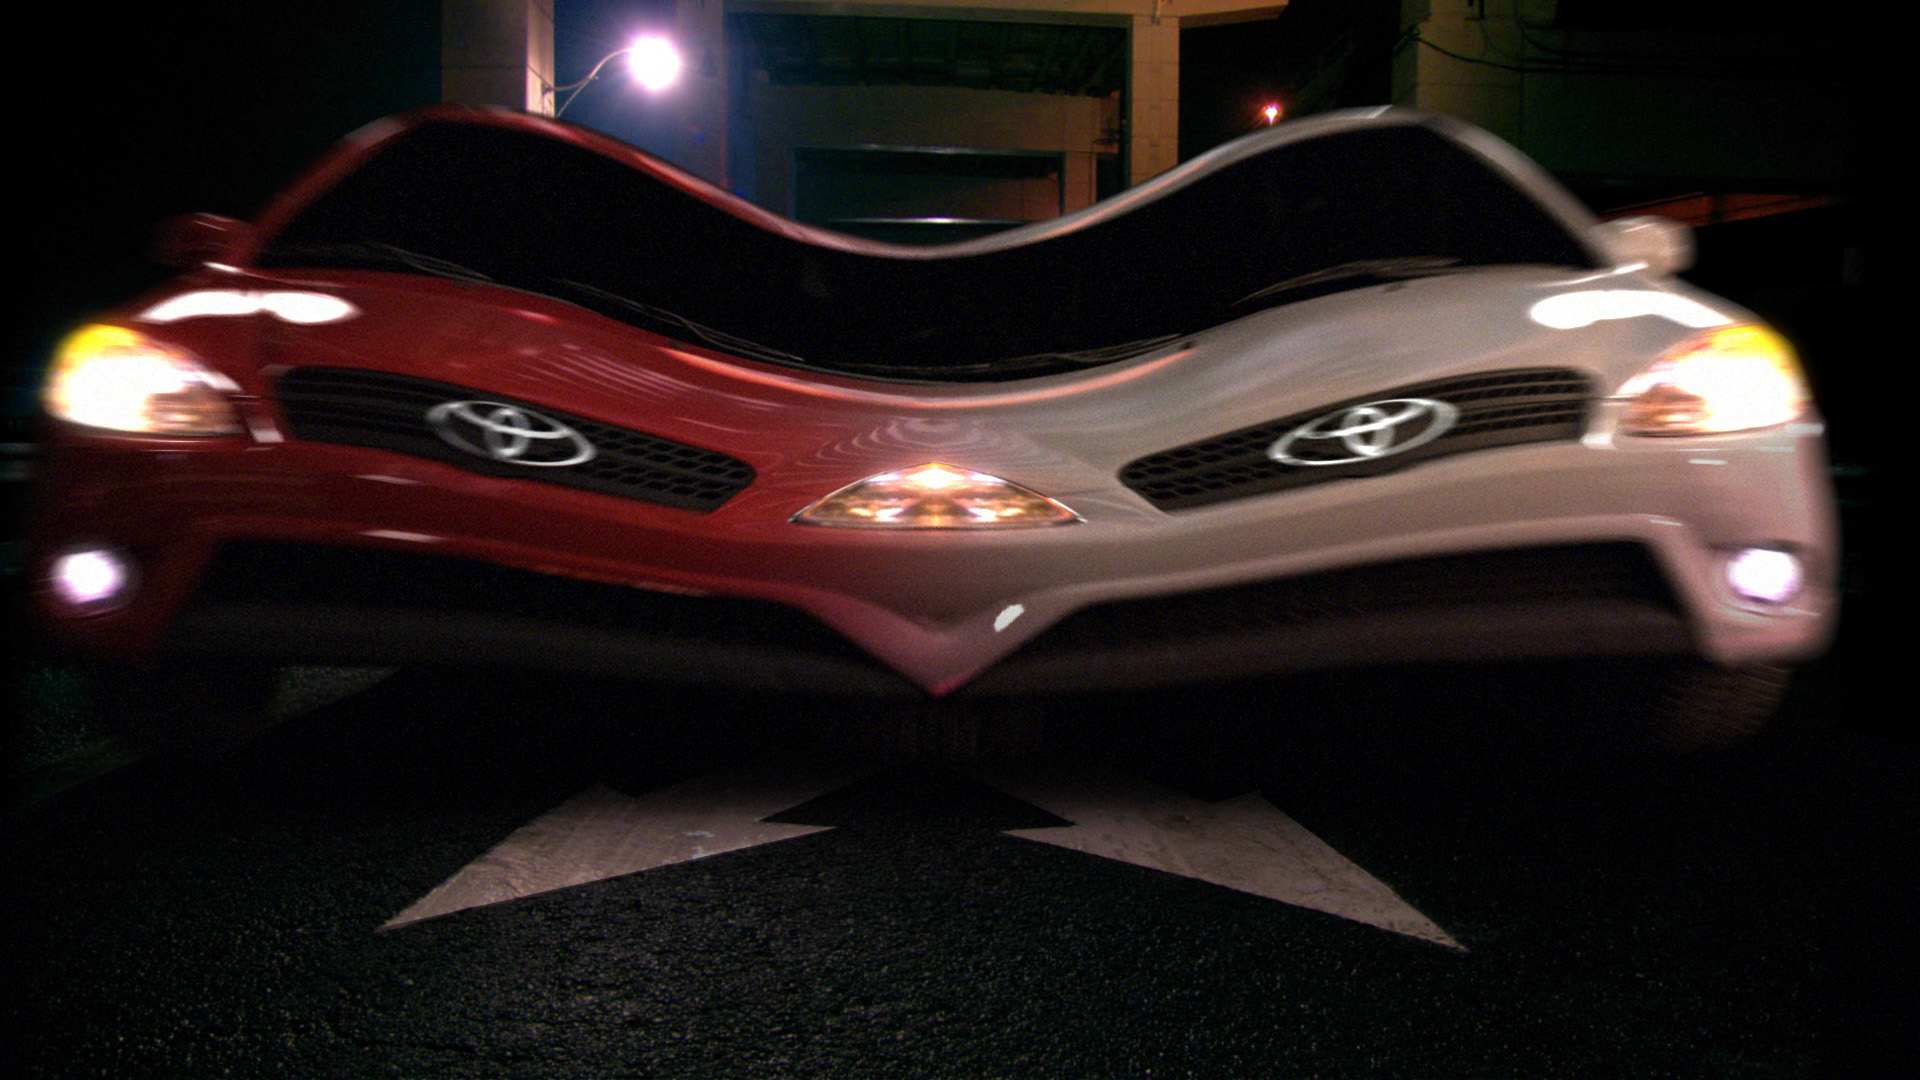 toyota_matrix_break_away_image01